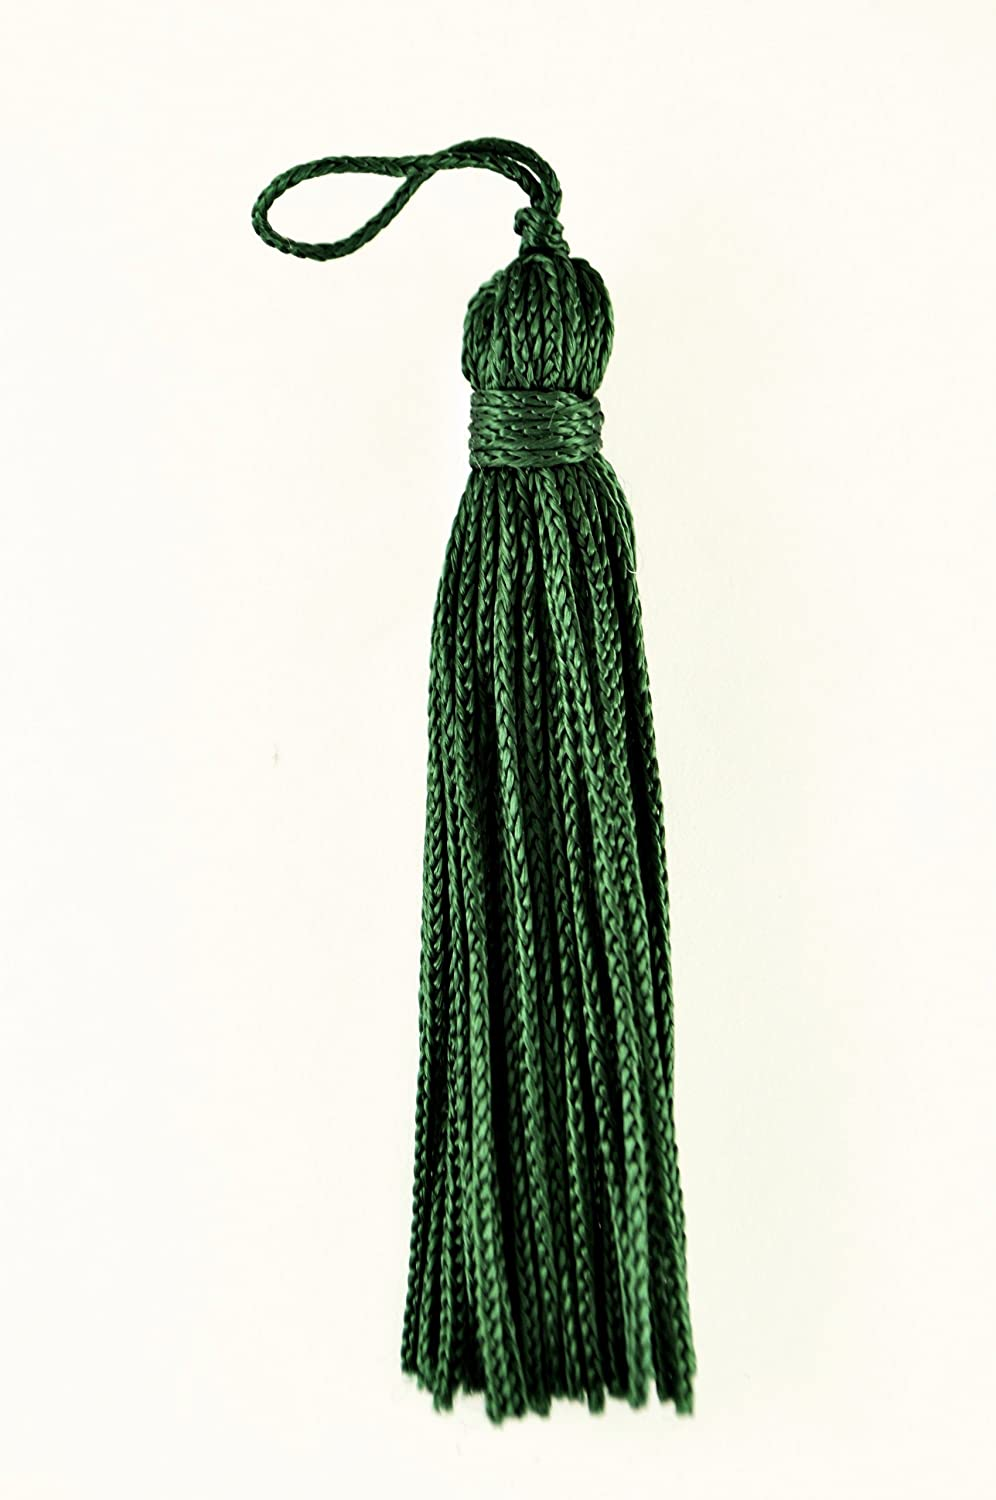 Set of 10 Green Chainette Tassel, 3 Inch Long with 1 Inch Loop, Basic Trim Collection Style# RT03 Color: Green - G10 DecoPro